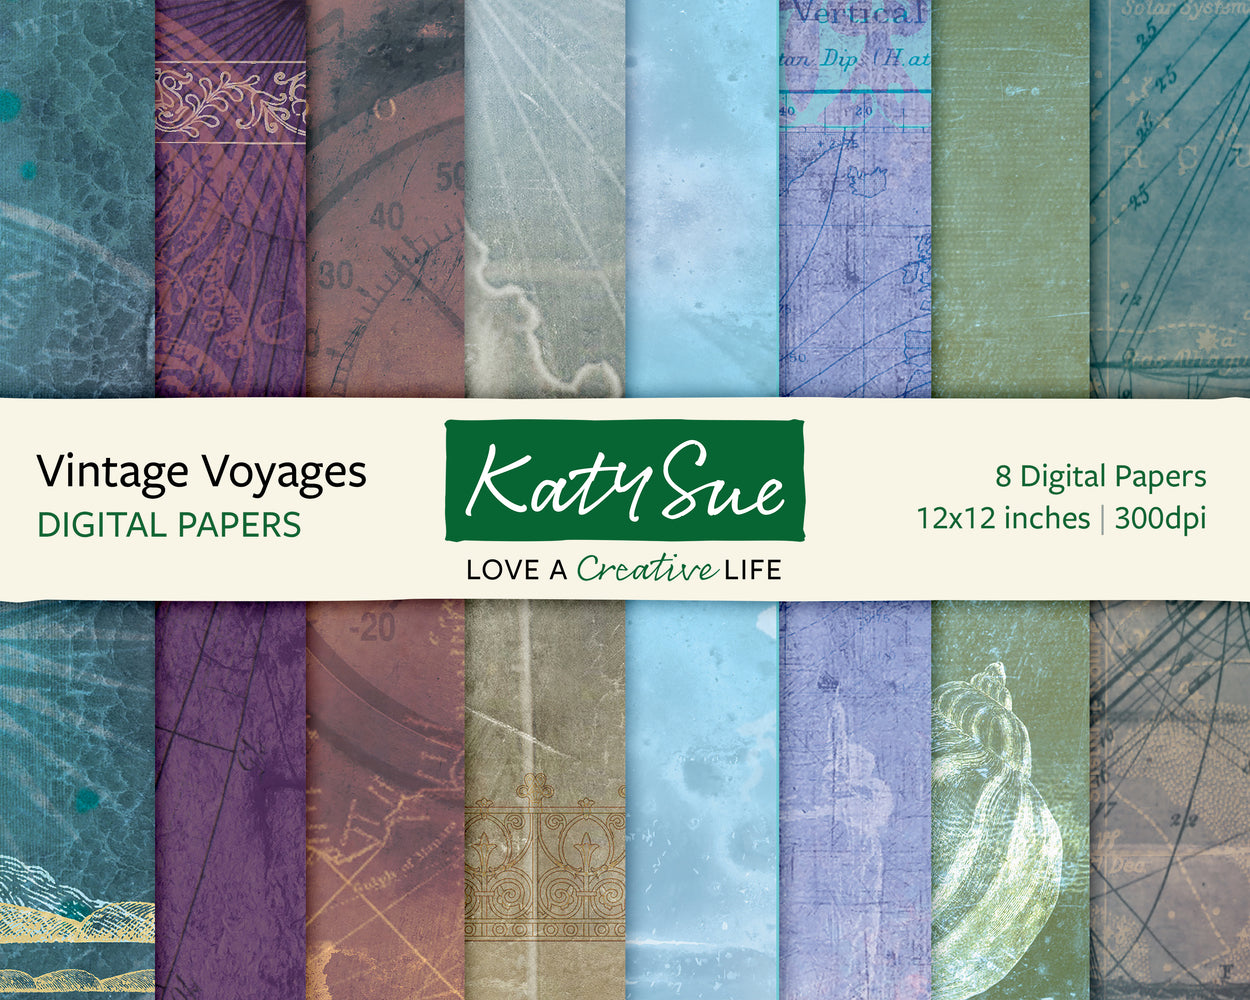 Vintage Voyages | 12x12 Digital Papers